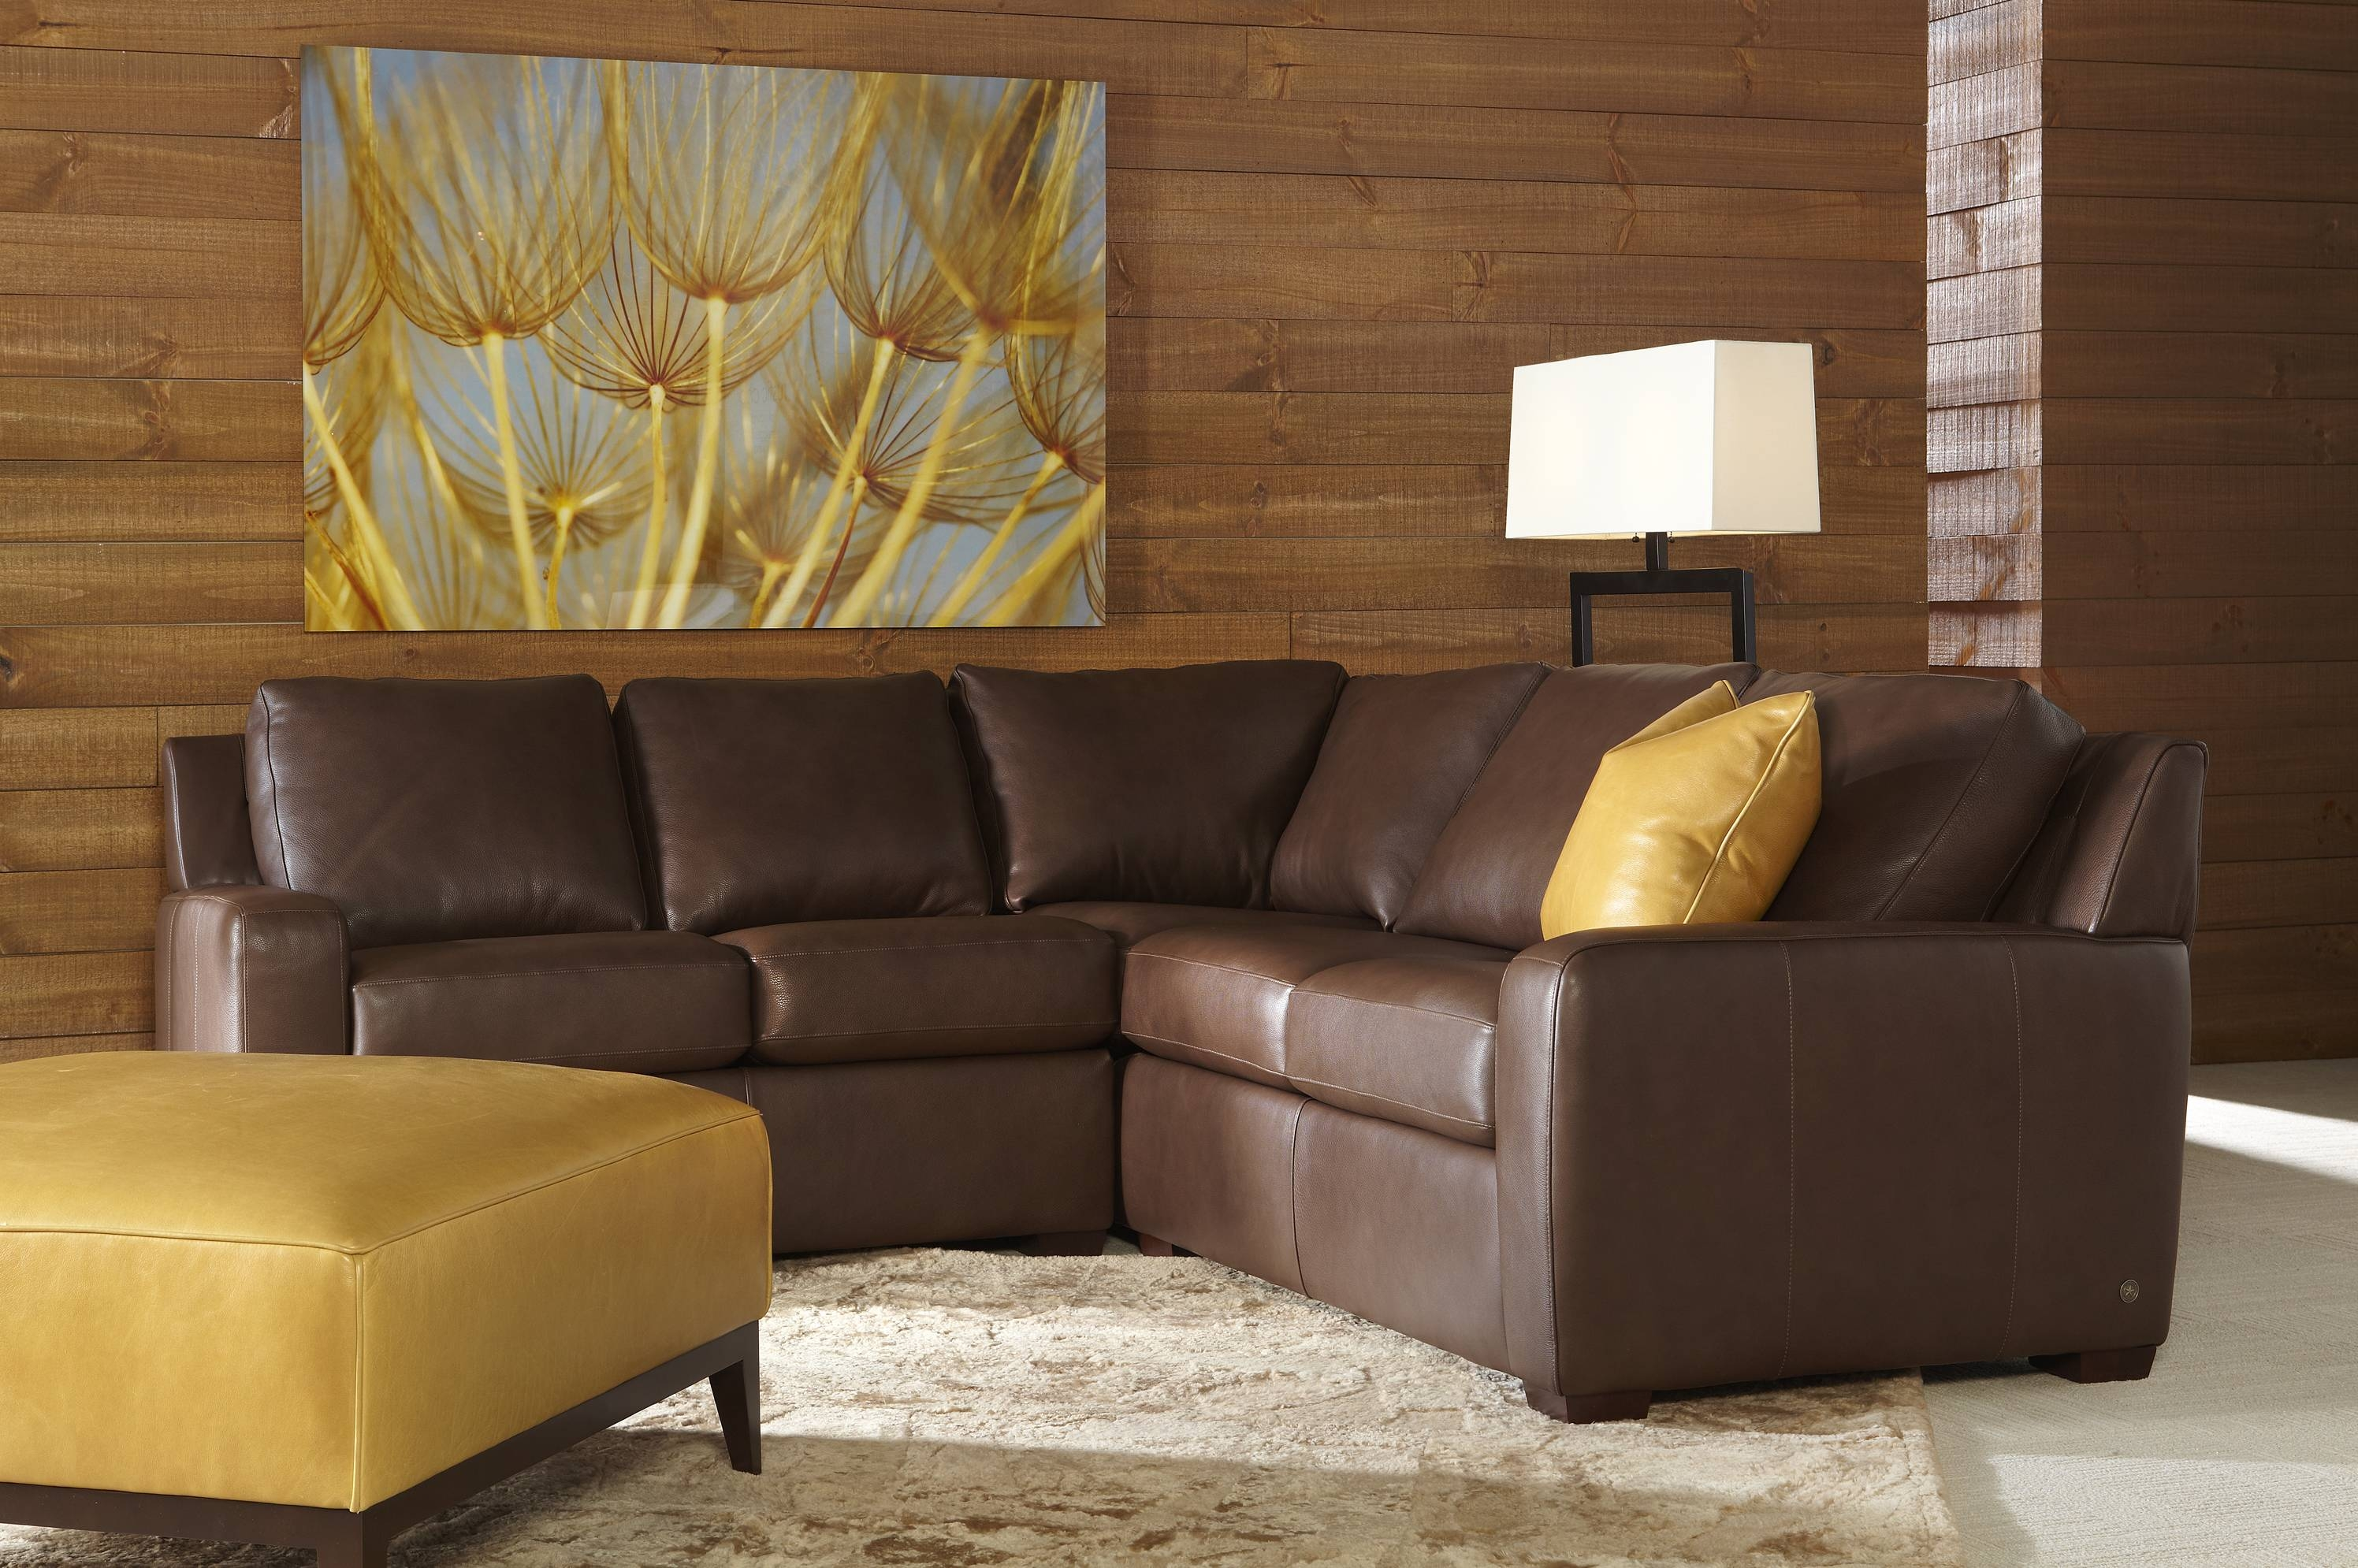 Sectional Sofas - Elegance And Style Tailored Just For Youand intended for American Made Sectional Sofas (Image 20 of 30)